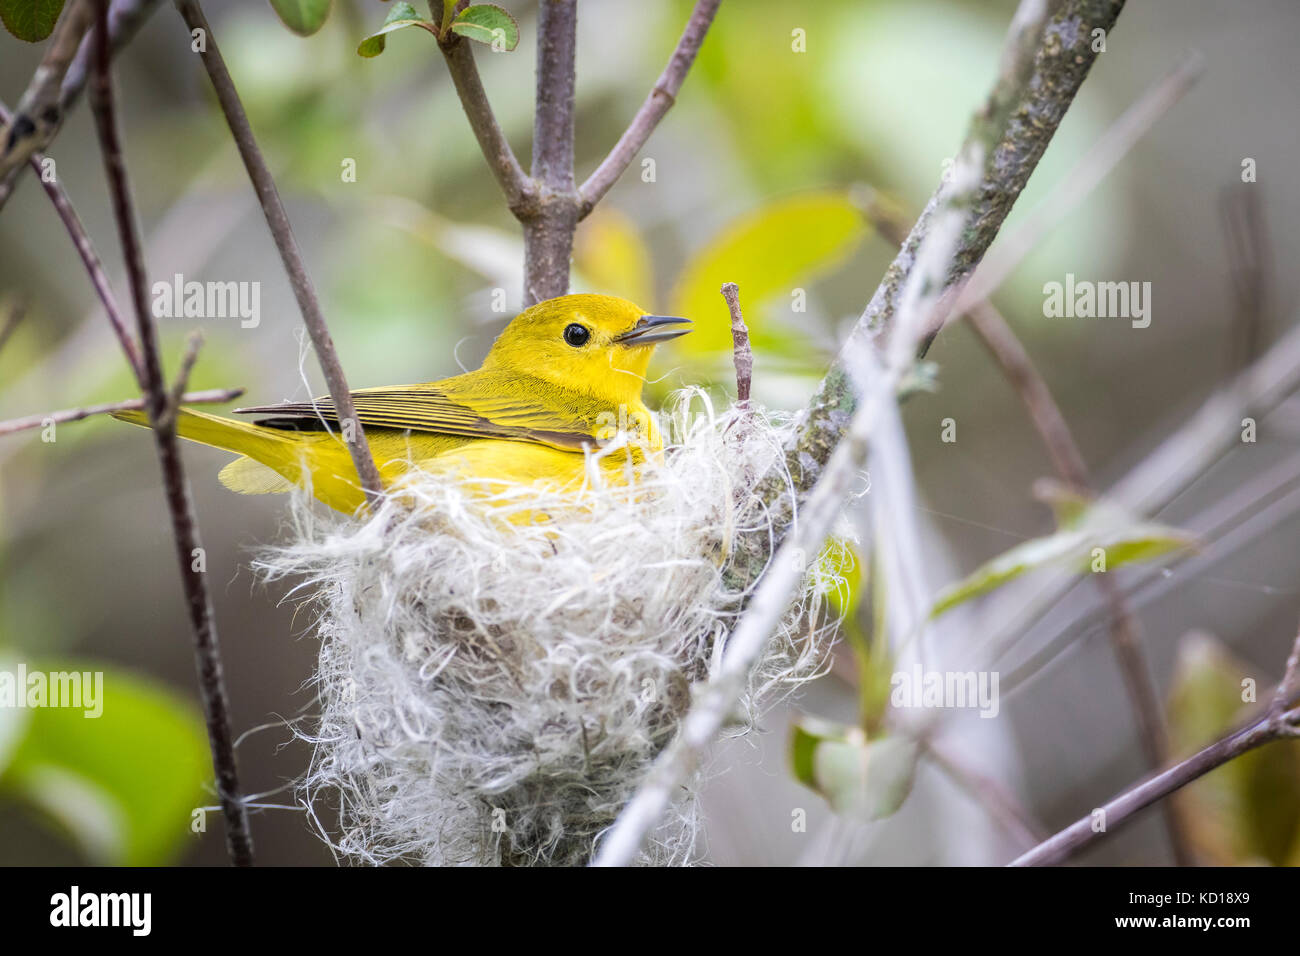 Female Yellow Warbler (Setophaga petechia) building a nest of fluffy plant fibres and spider webs, Prince Edward Stock Photo